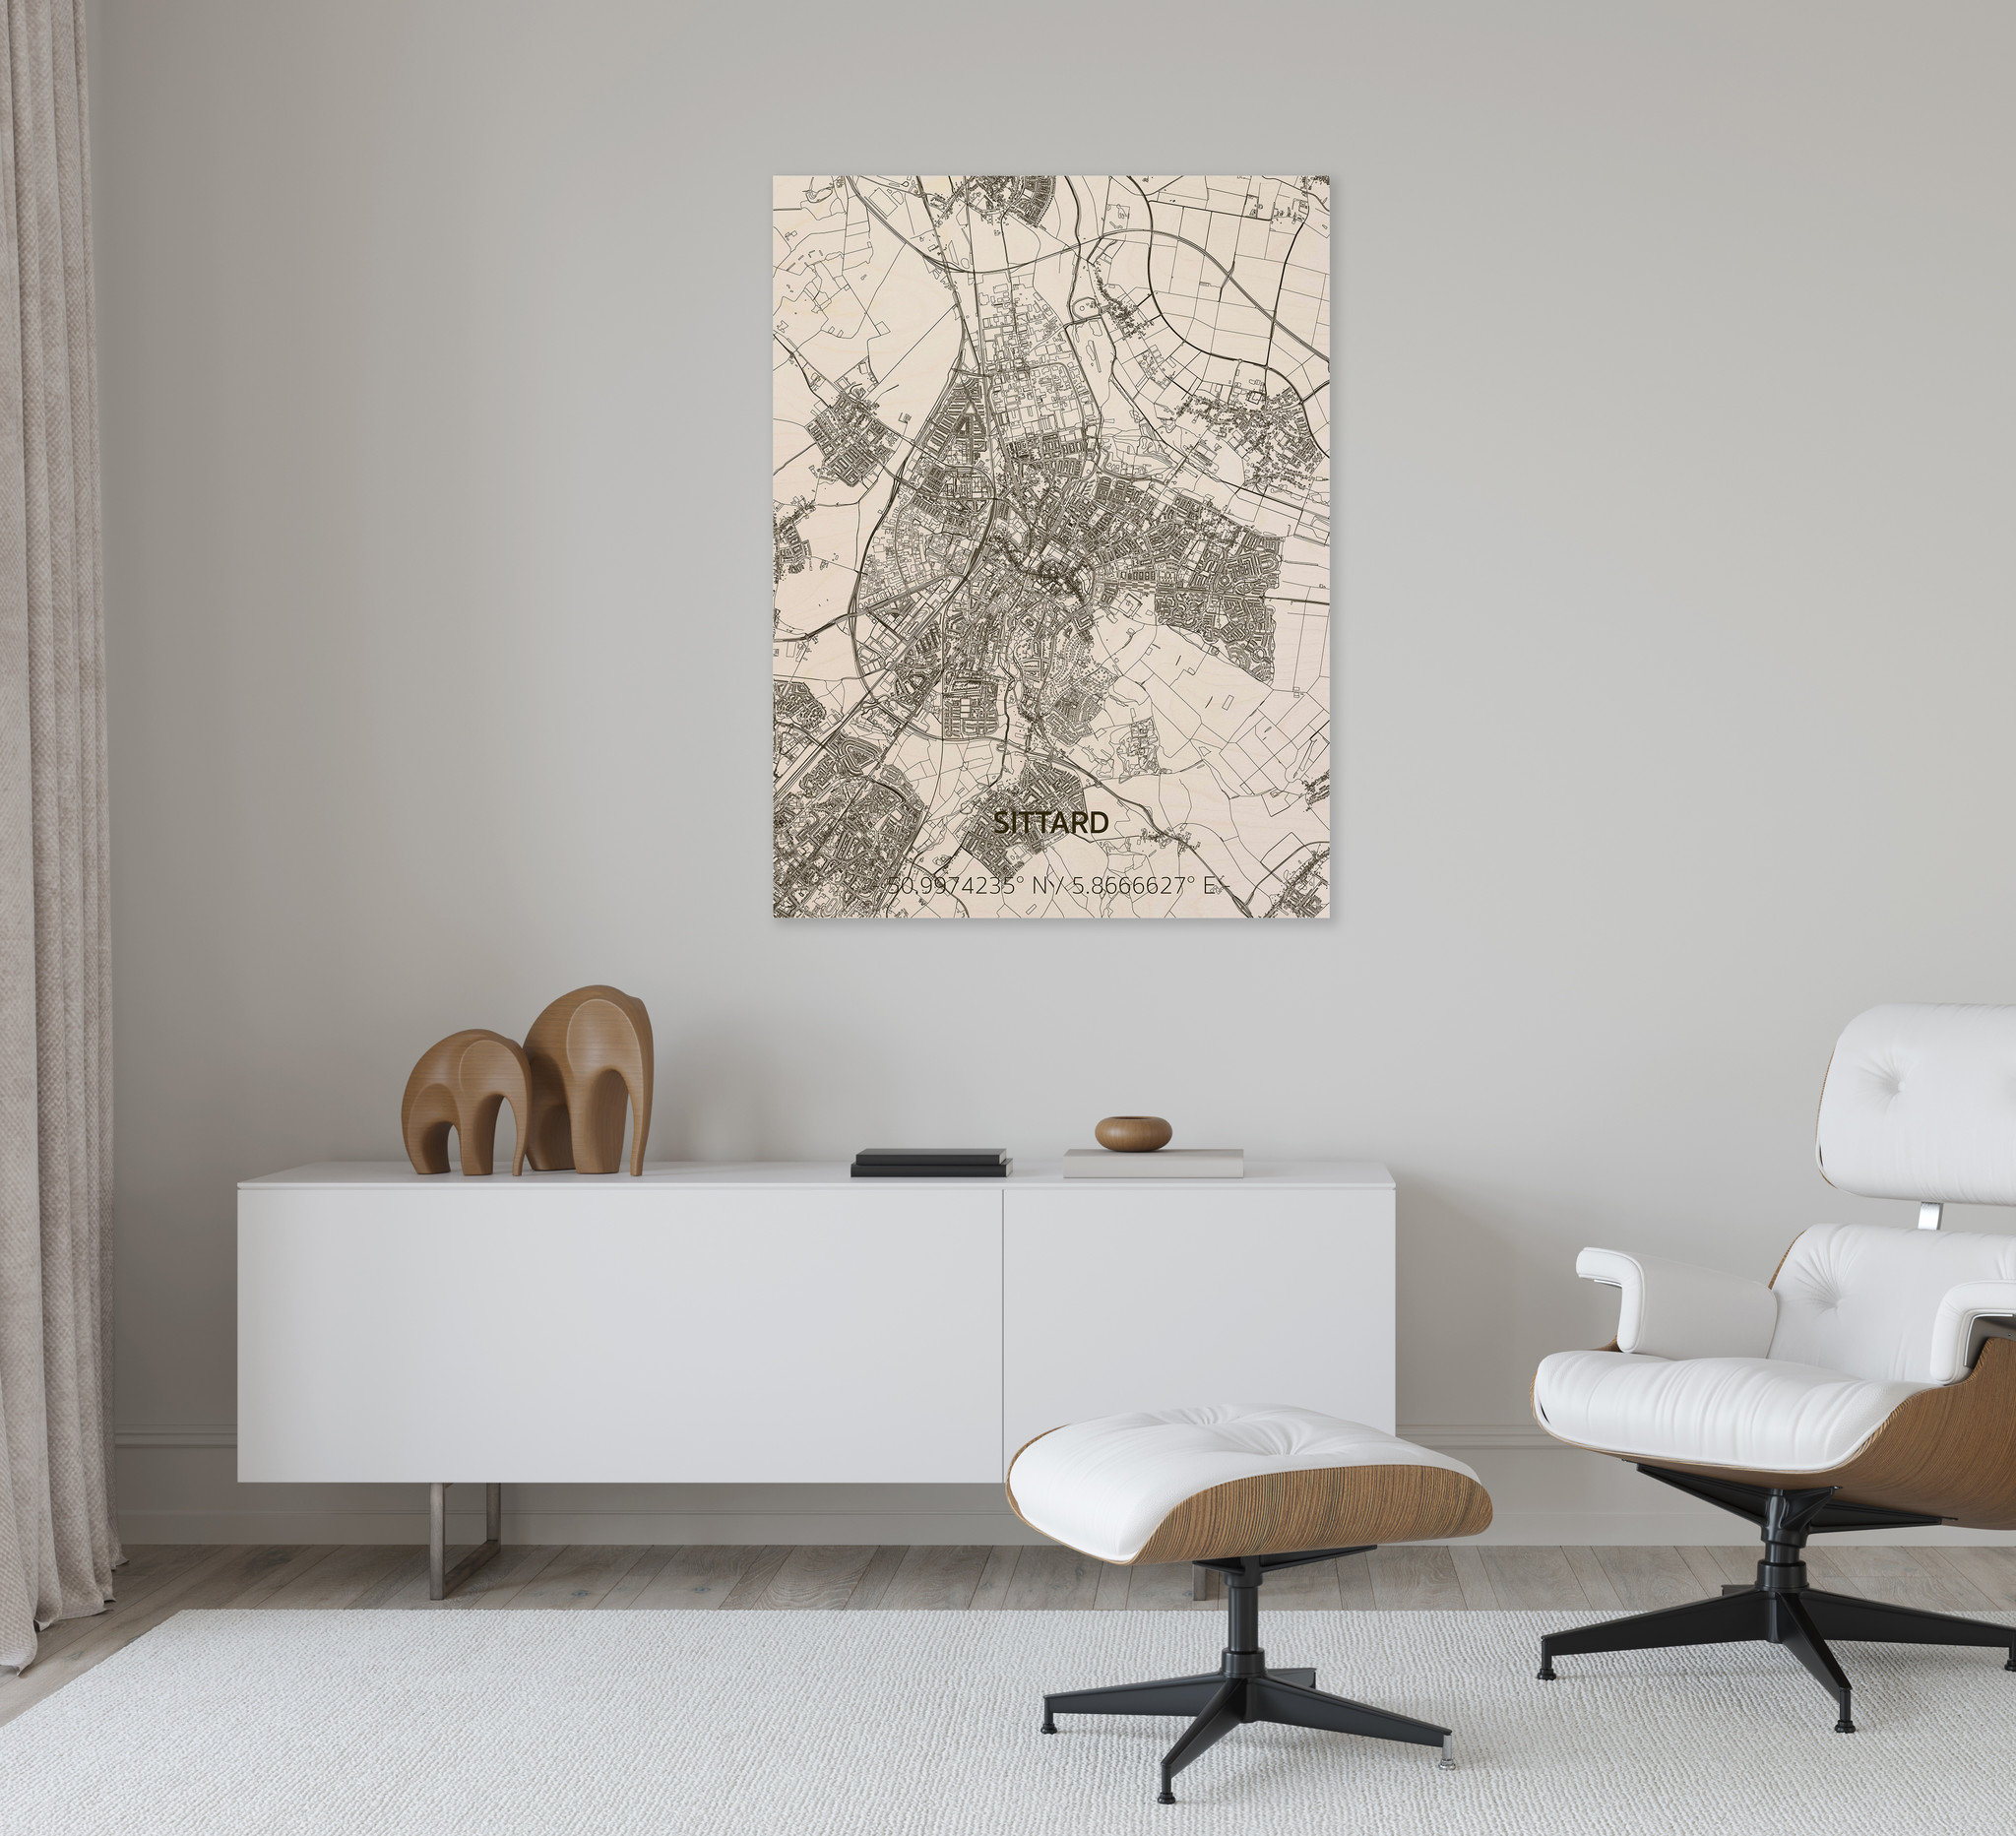 Citymap Sittard | wooden wall decoration-2